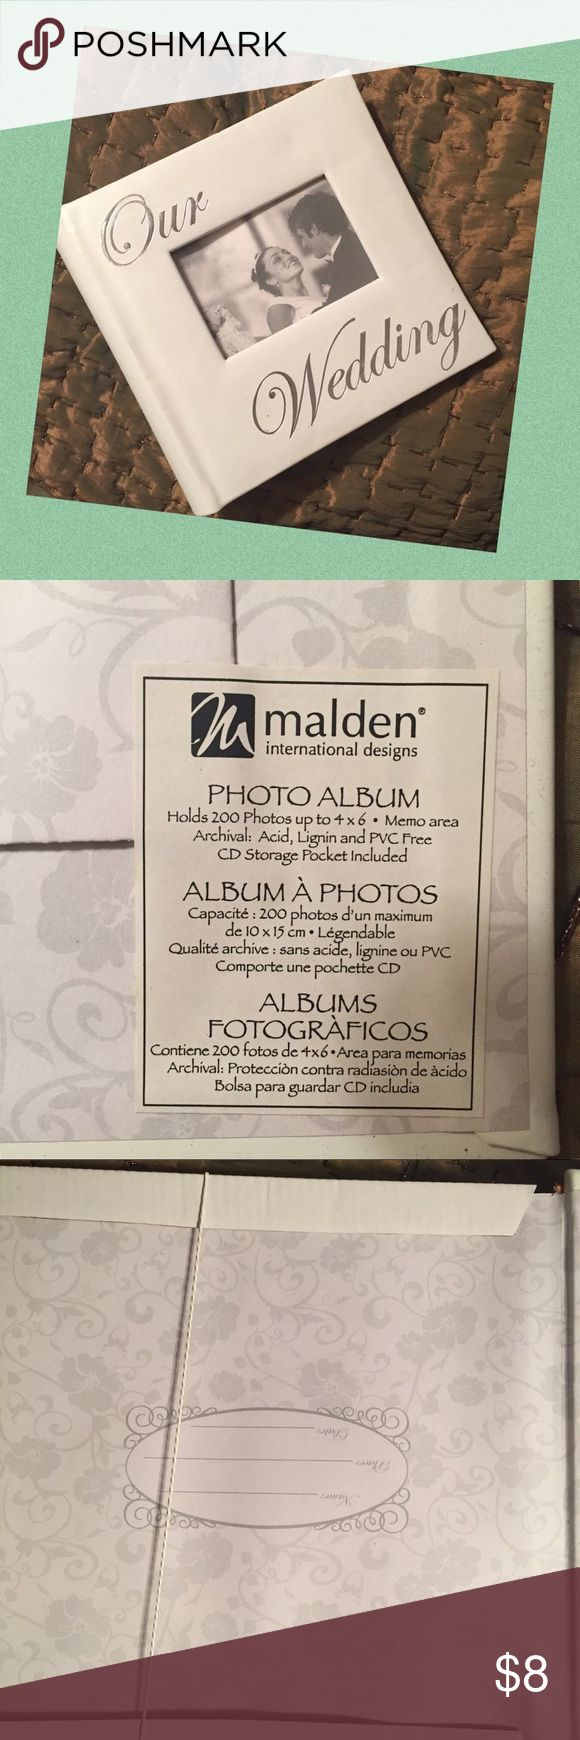 Wedding Photo Album holds 200 photos, up to 4x6 Wedding Photo Album holds 200 photos, up to 4x6. CD storage pocket included. New, never used Malden International Design Other